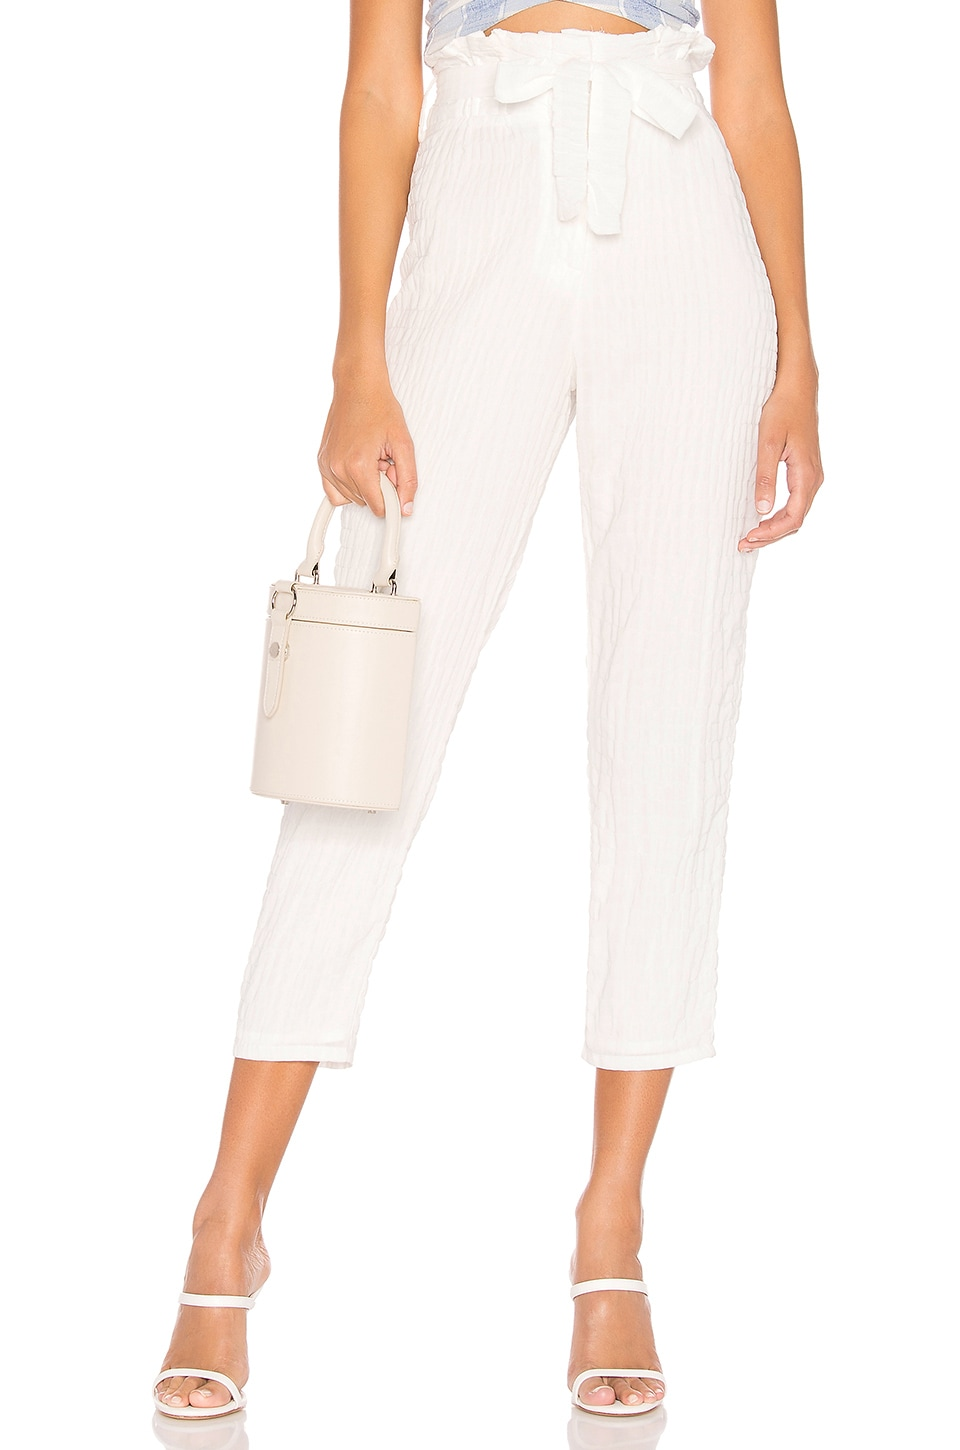 Lovers + Friends Irving Pant in White